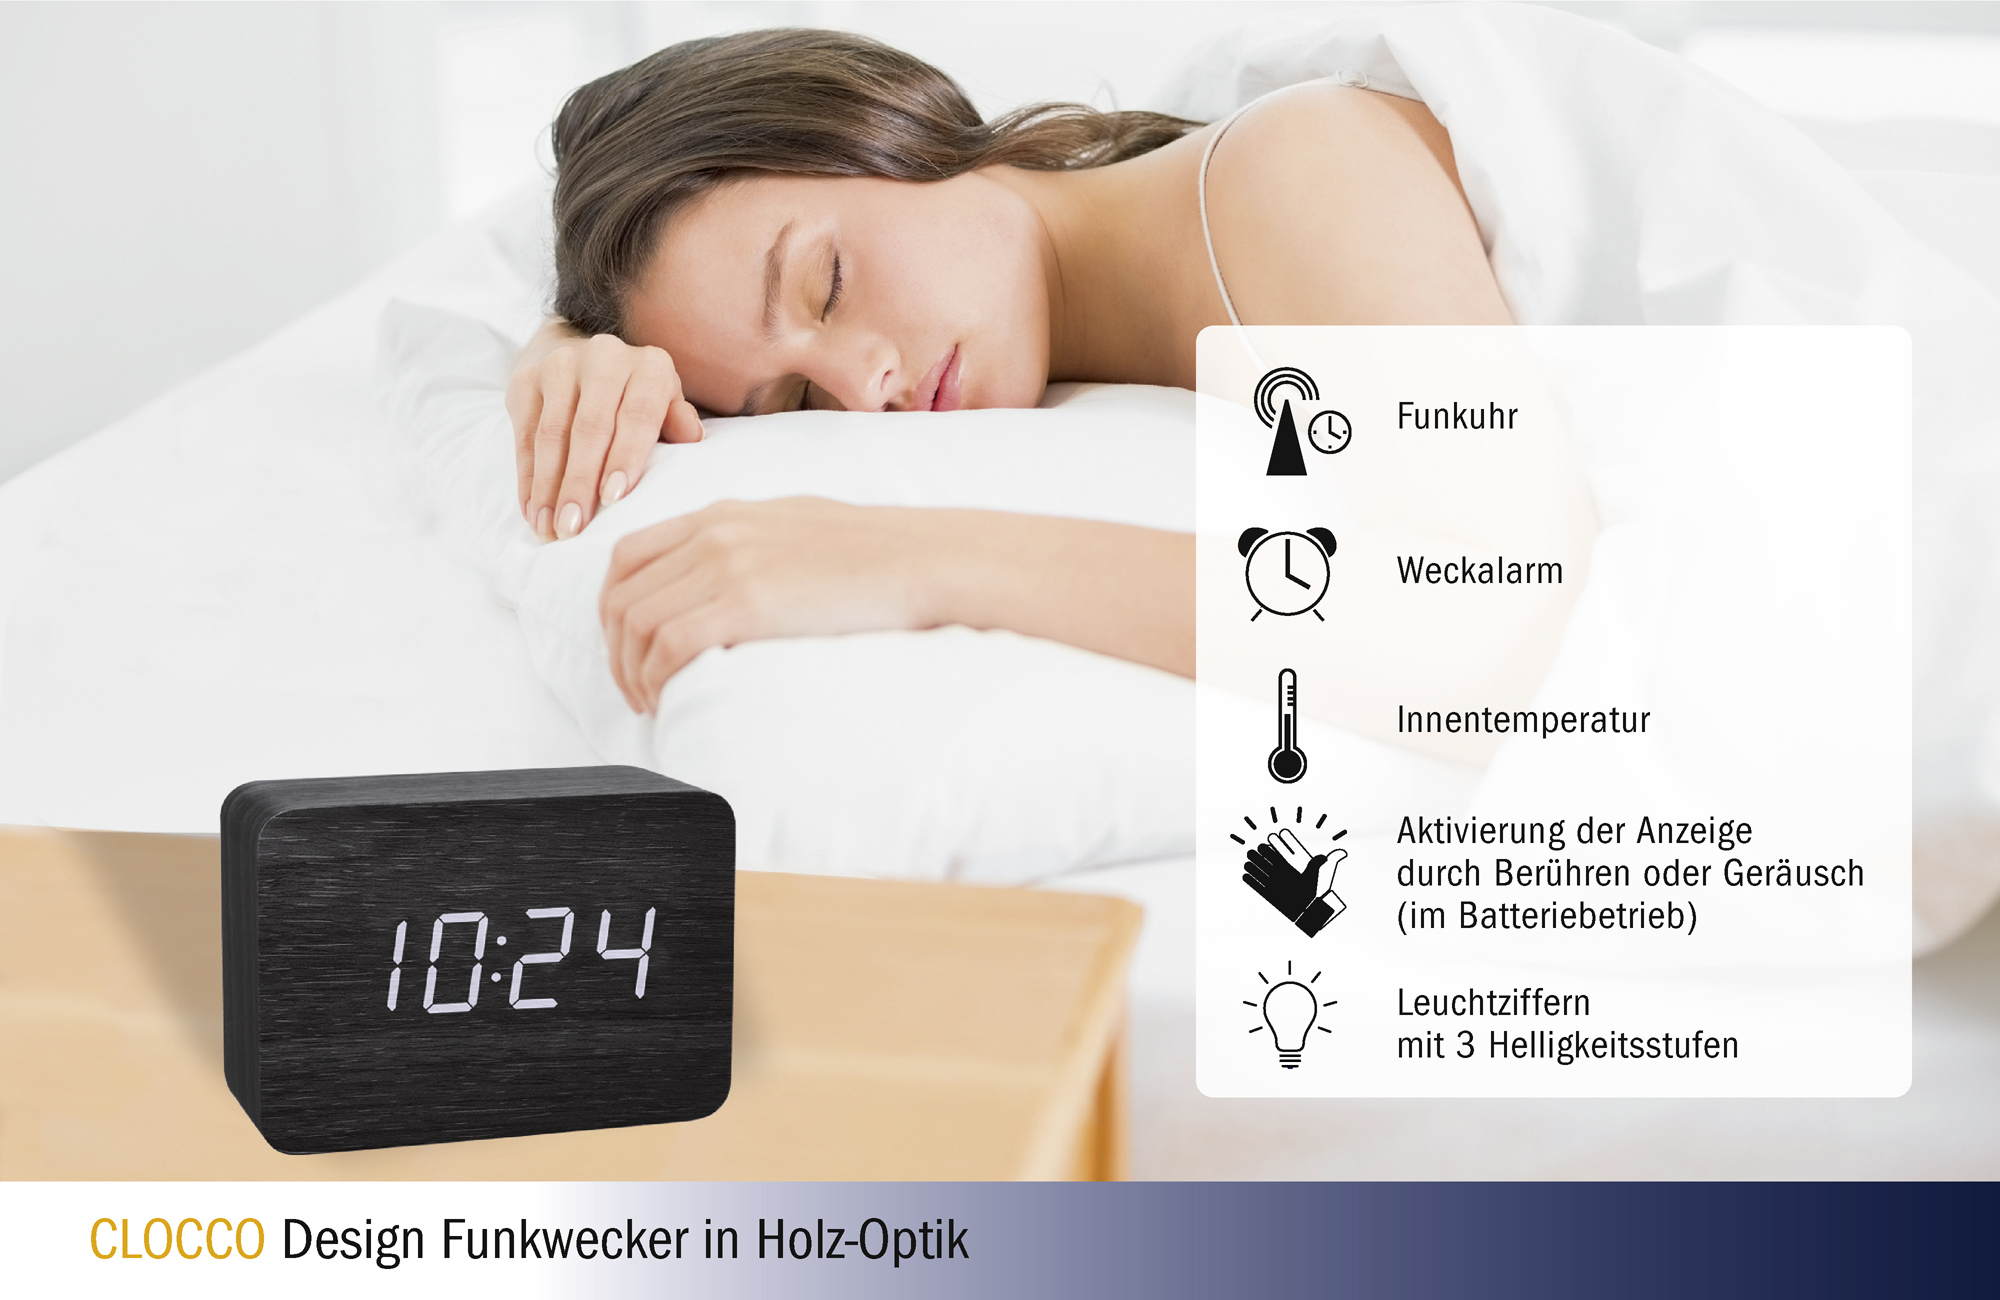 Clocco_Funk-Wecker_Holz Optik_60254901_Icons.jpg